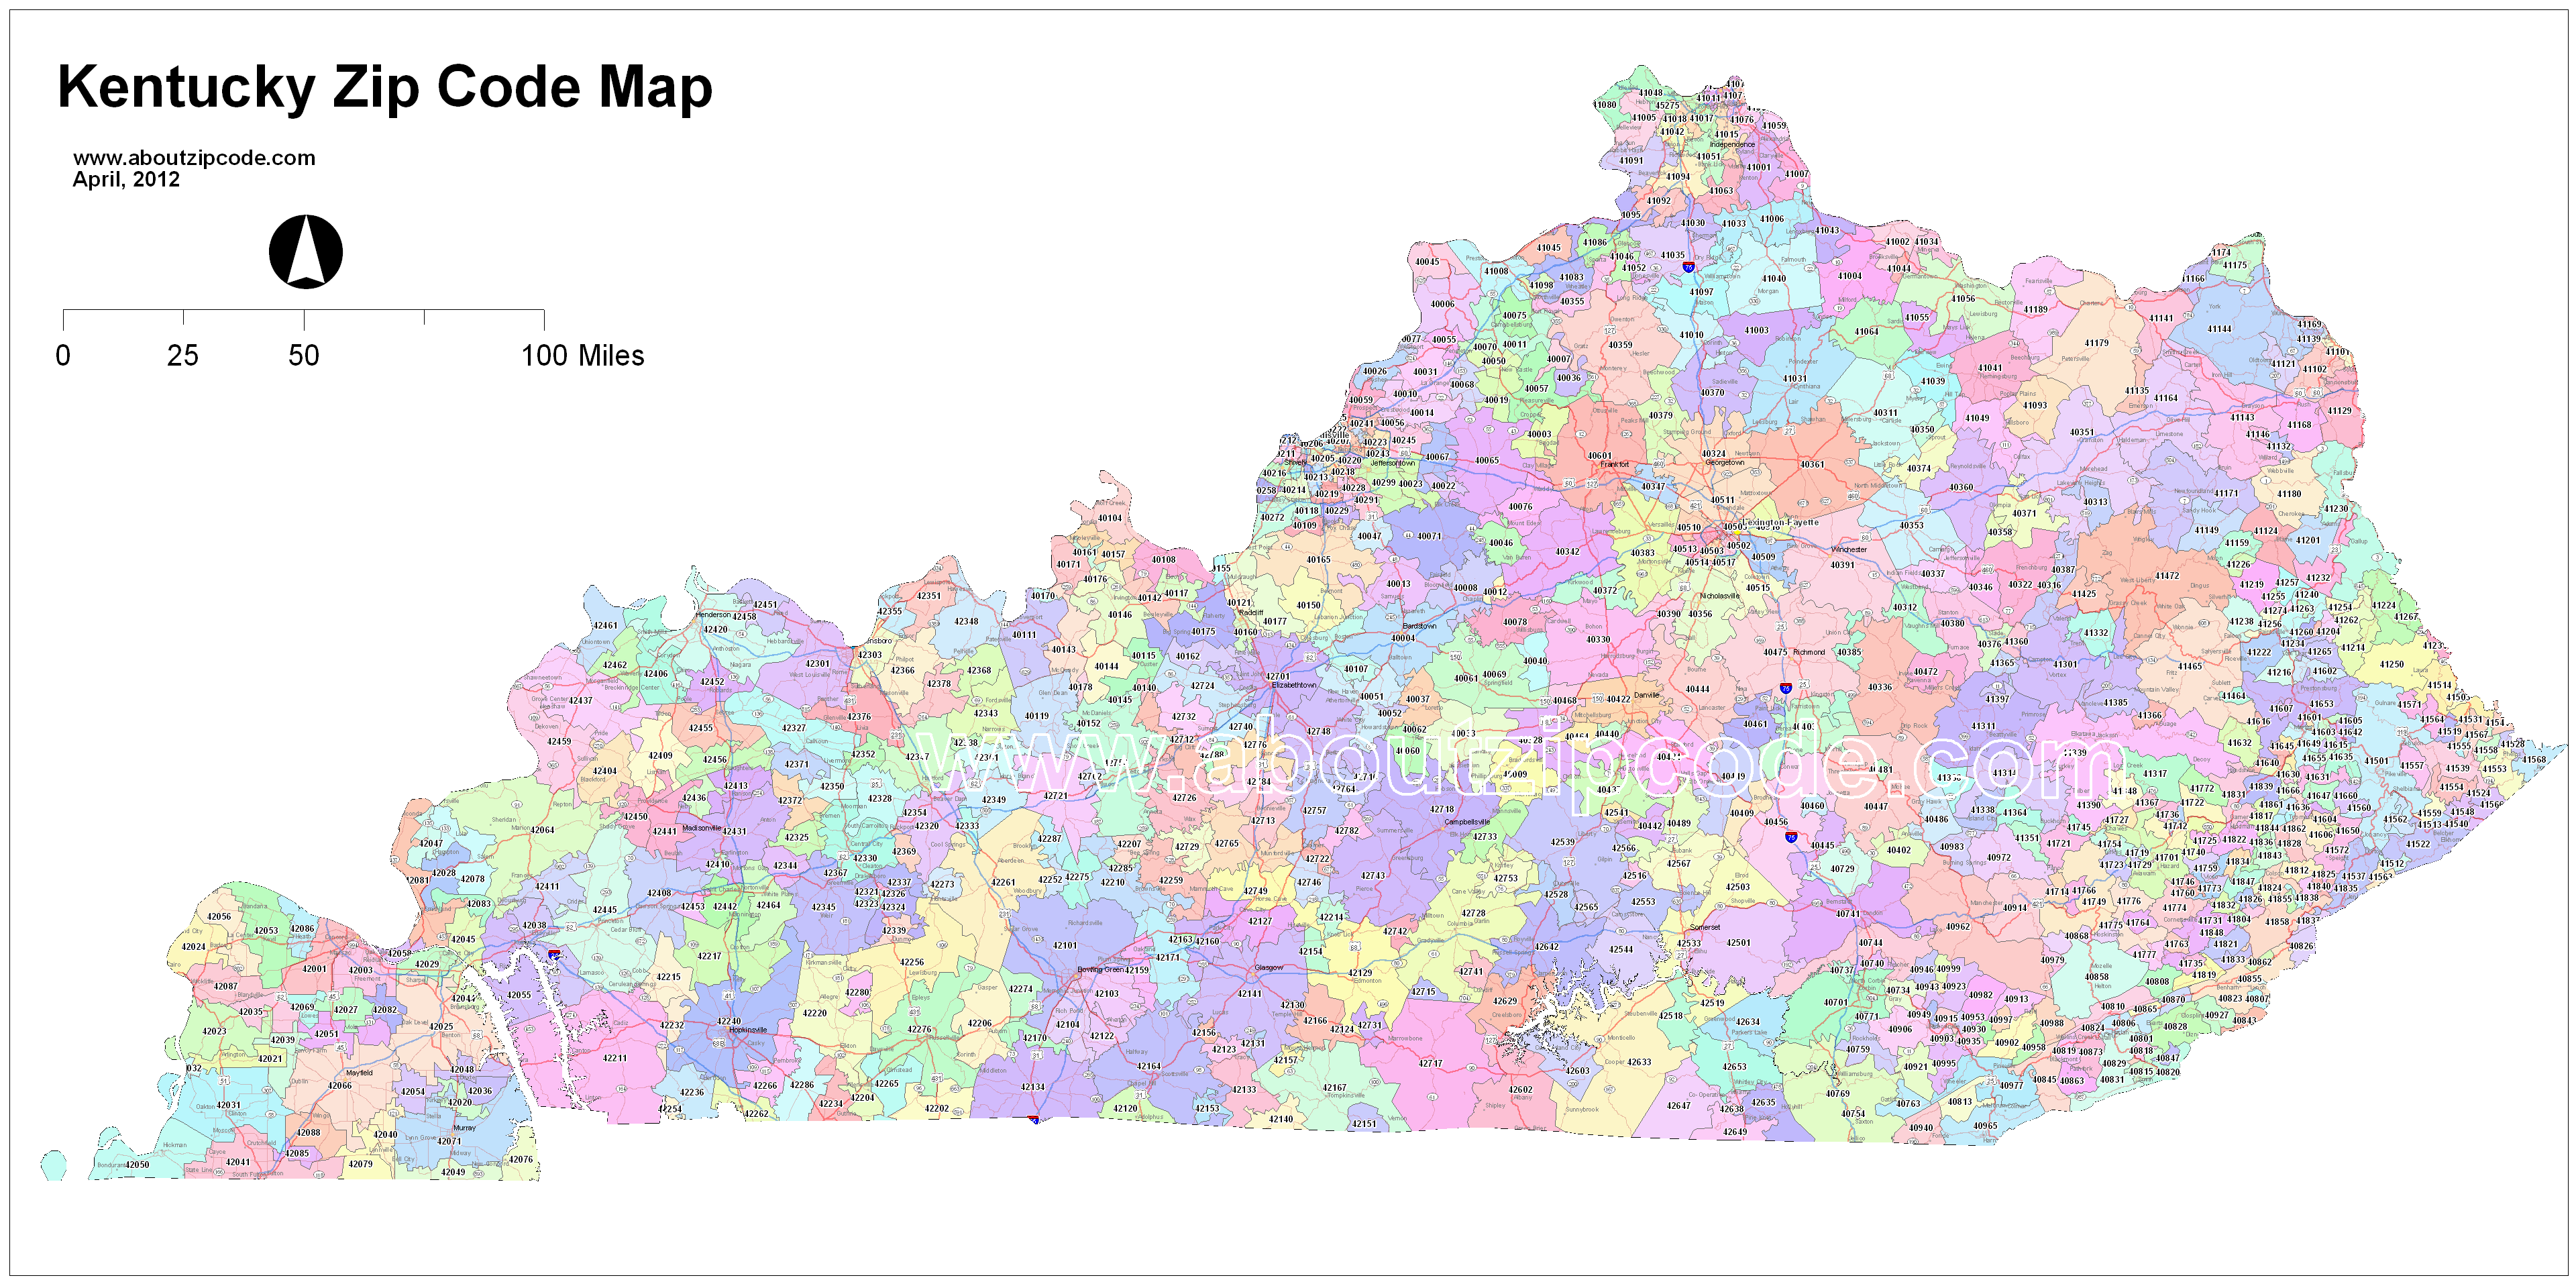 Kentucky Zip Code Maps   Free Kentucky Zip Code Maps